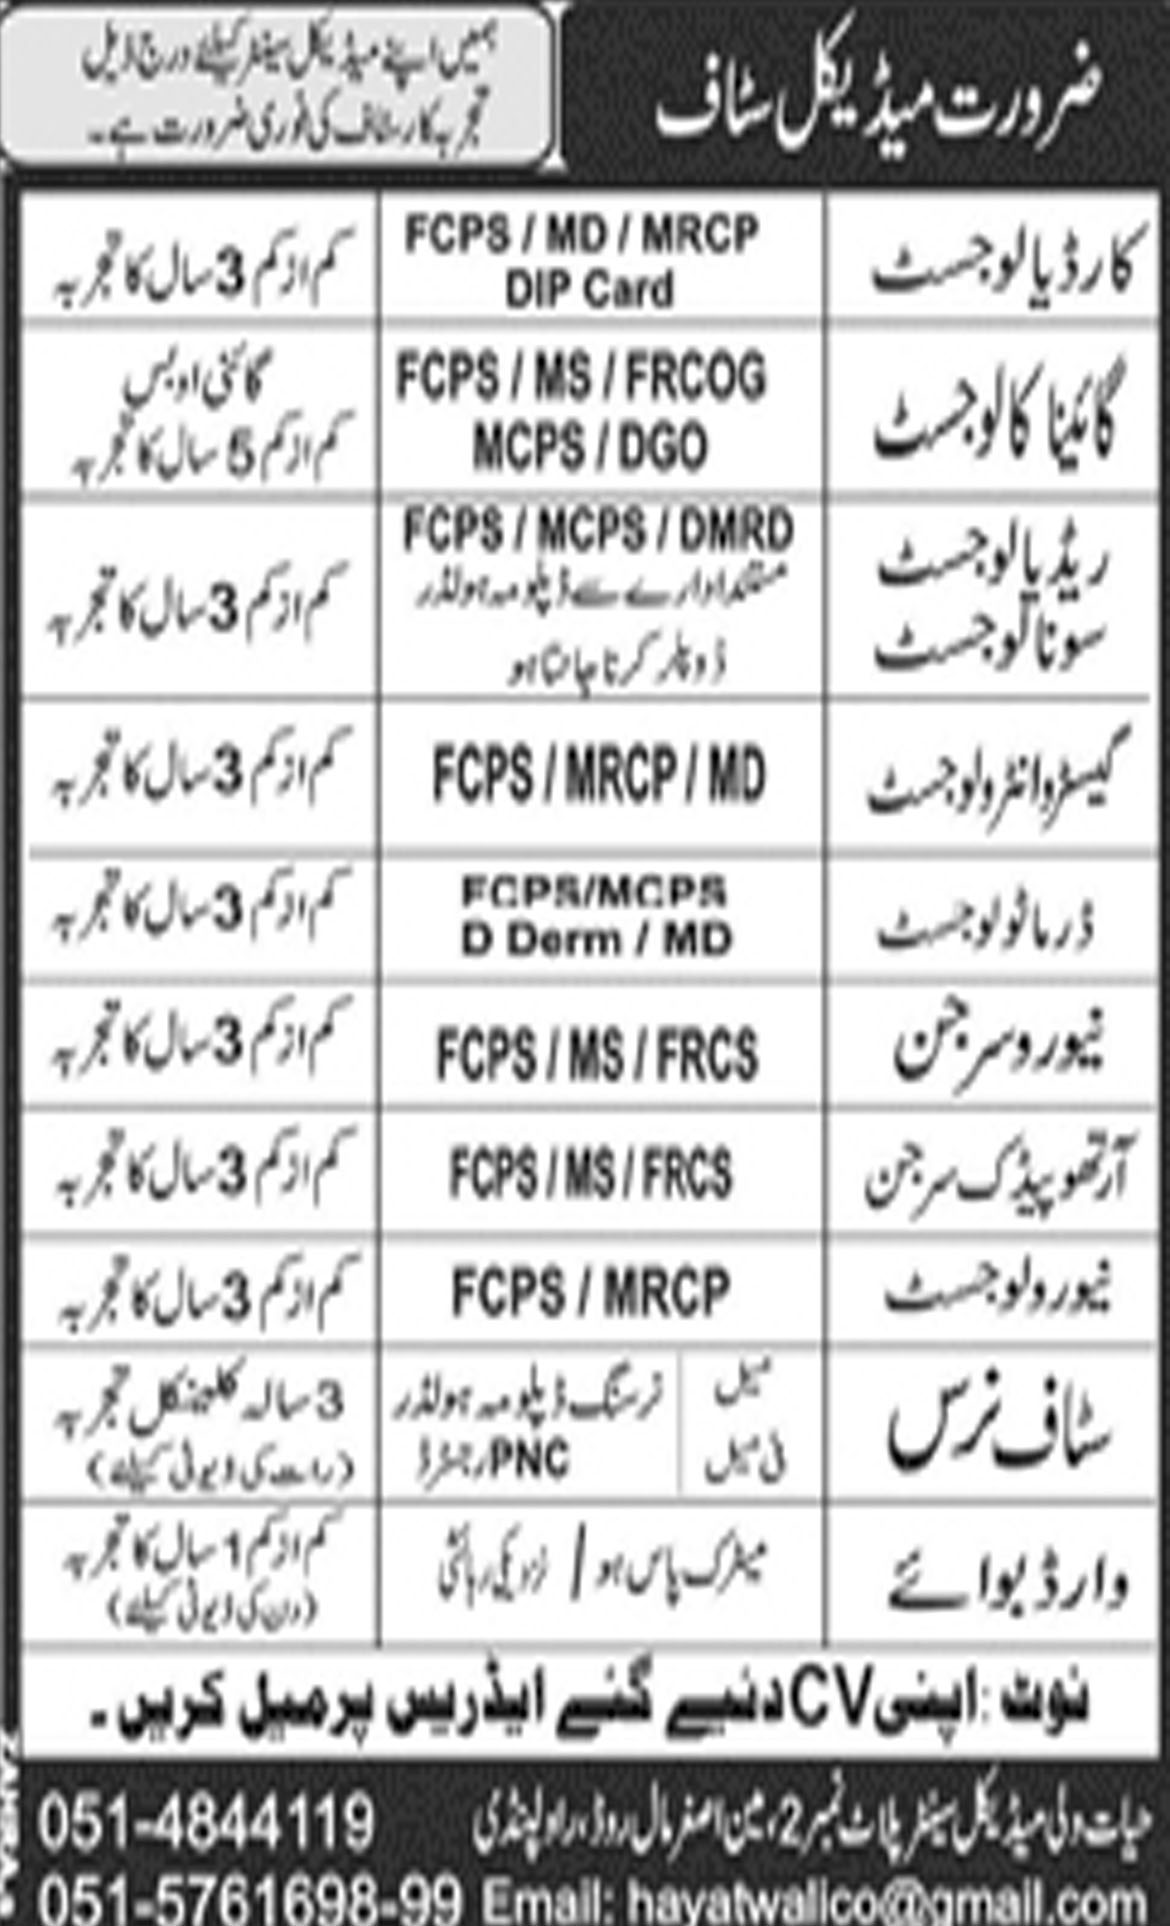 Jobs In Cardiologist, Gynecologist 12 Nov 2018